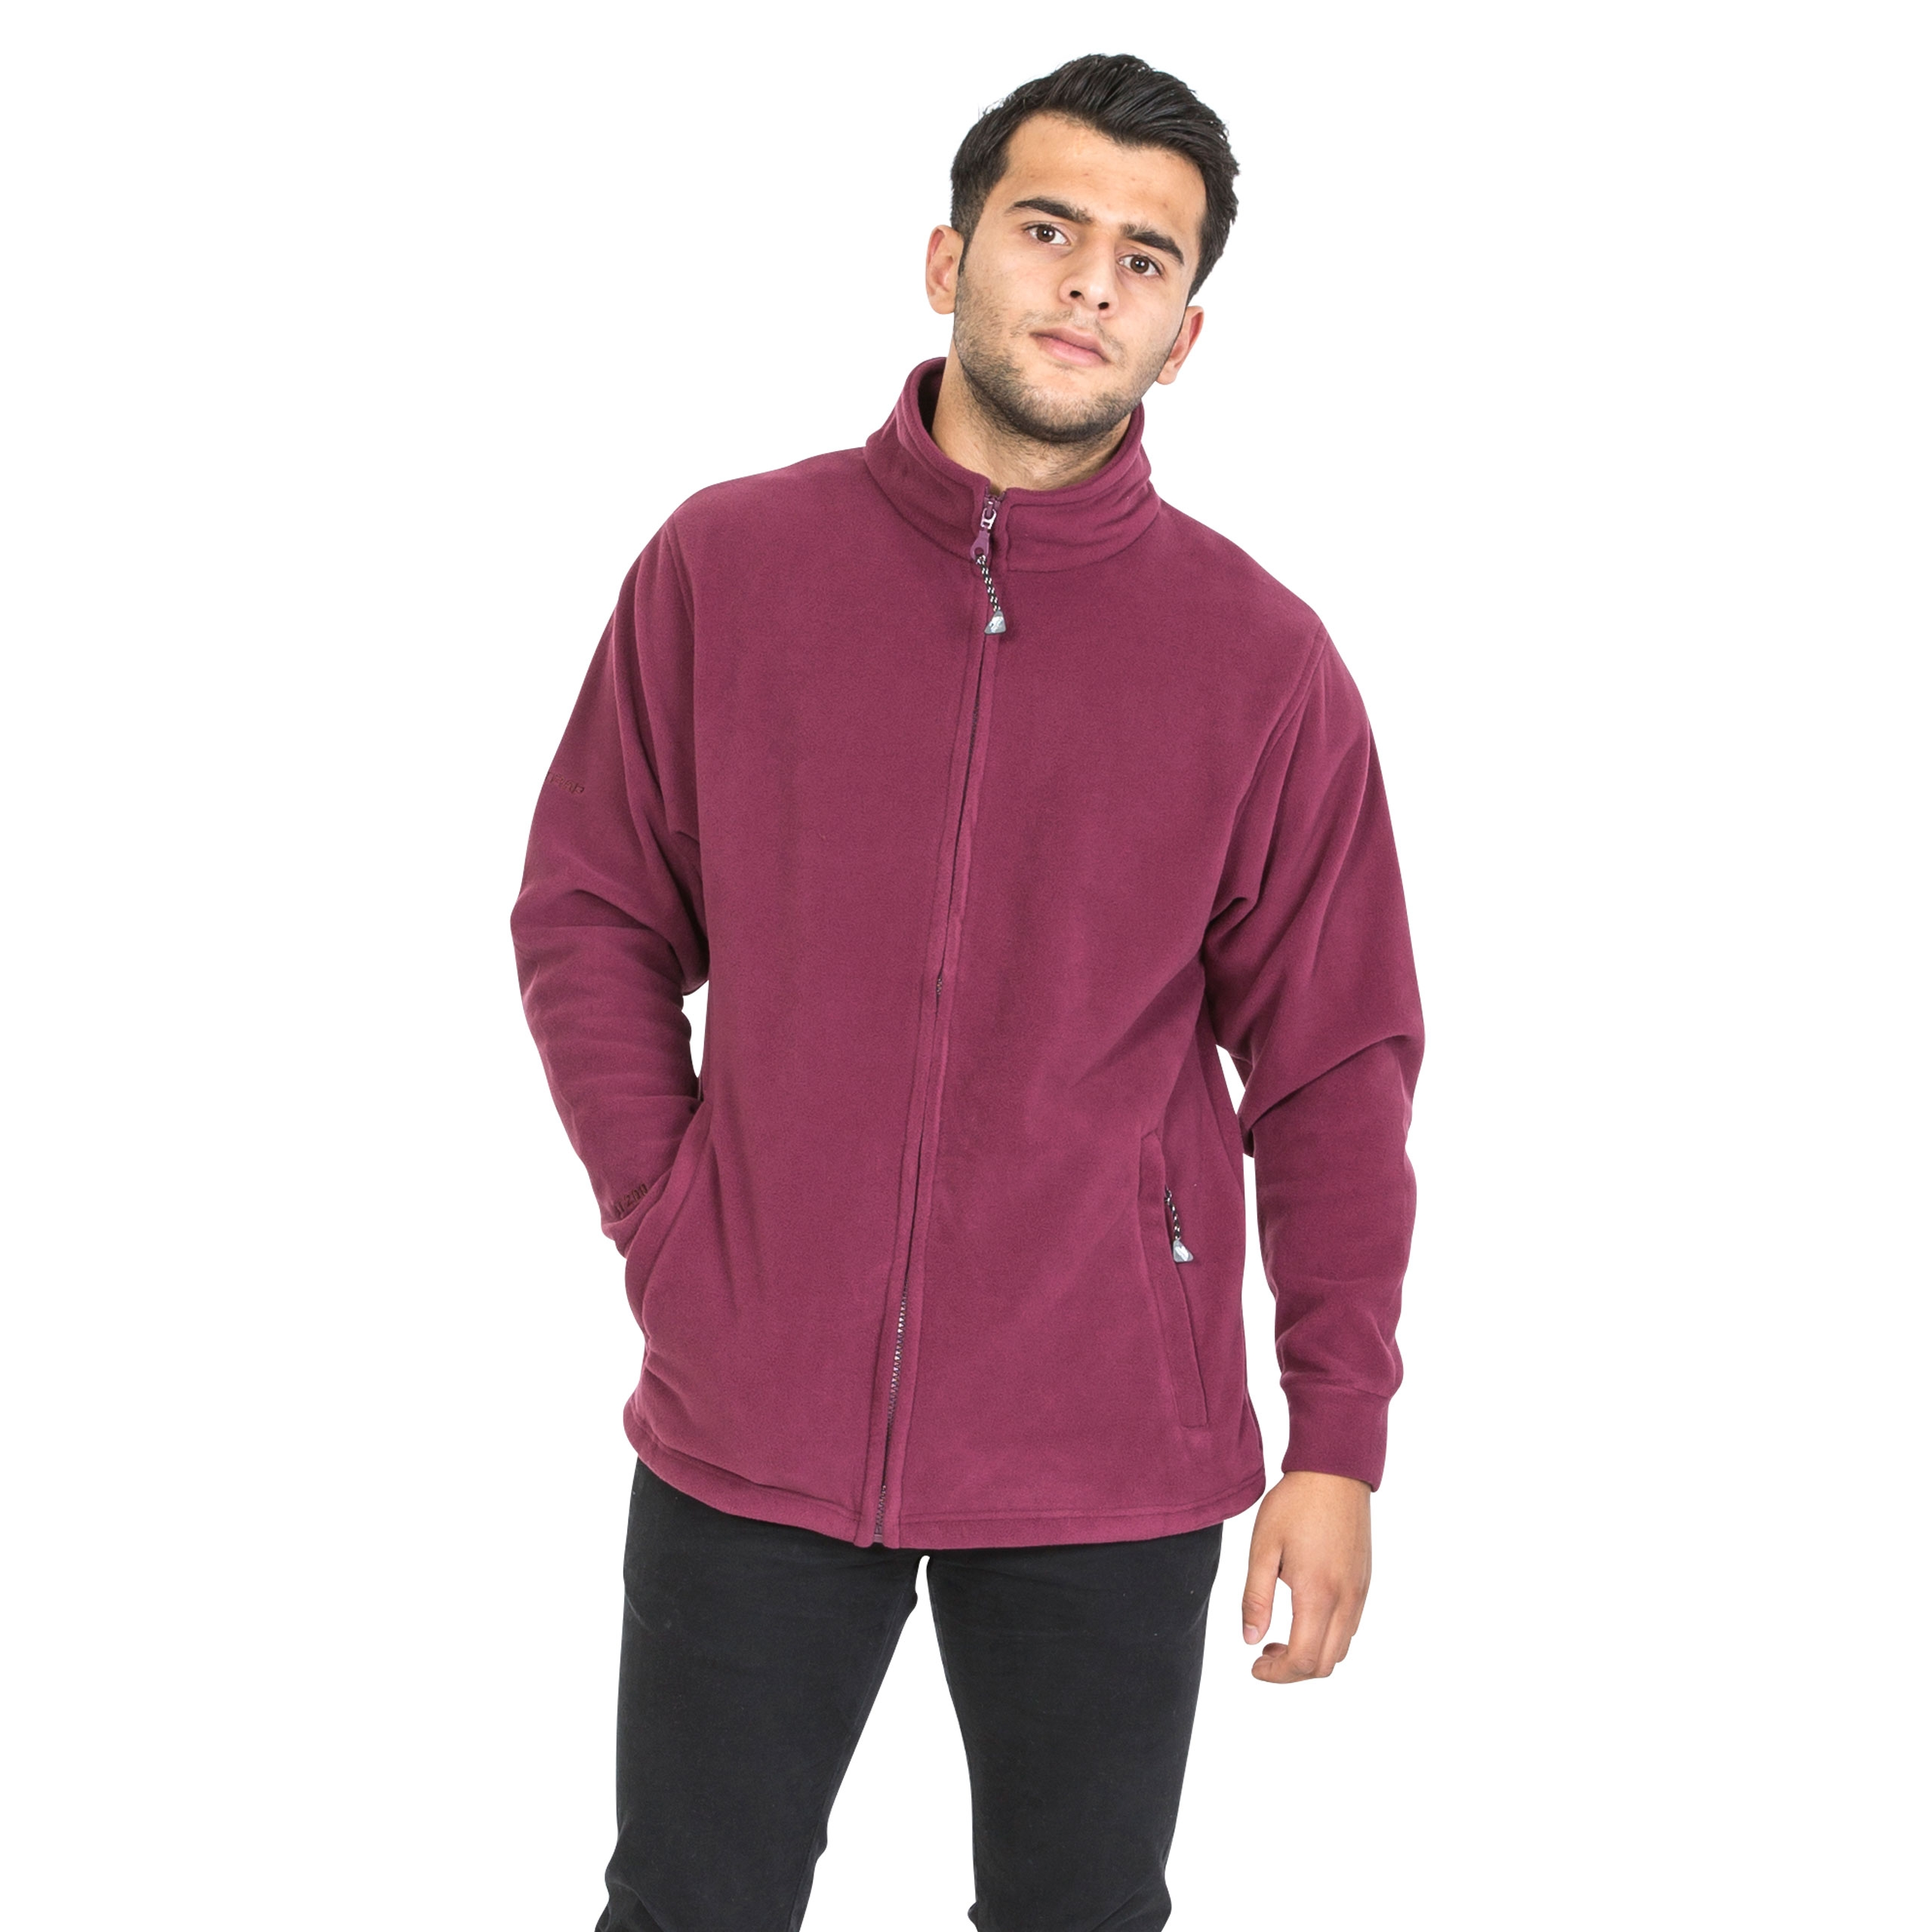 Trespass-Strength-Mens-Warm-Full-Zip-Fleece-Pullover-Walking-Hiking-Jumper thumbnail 22